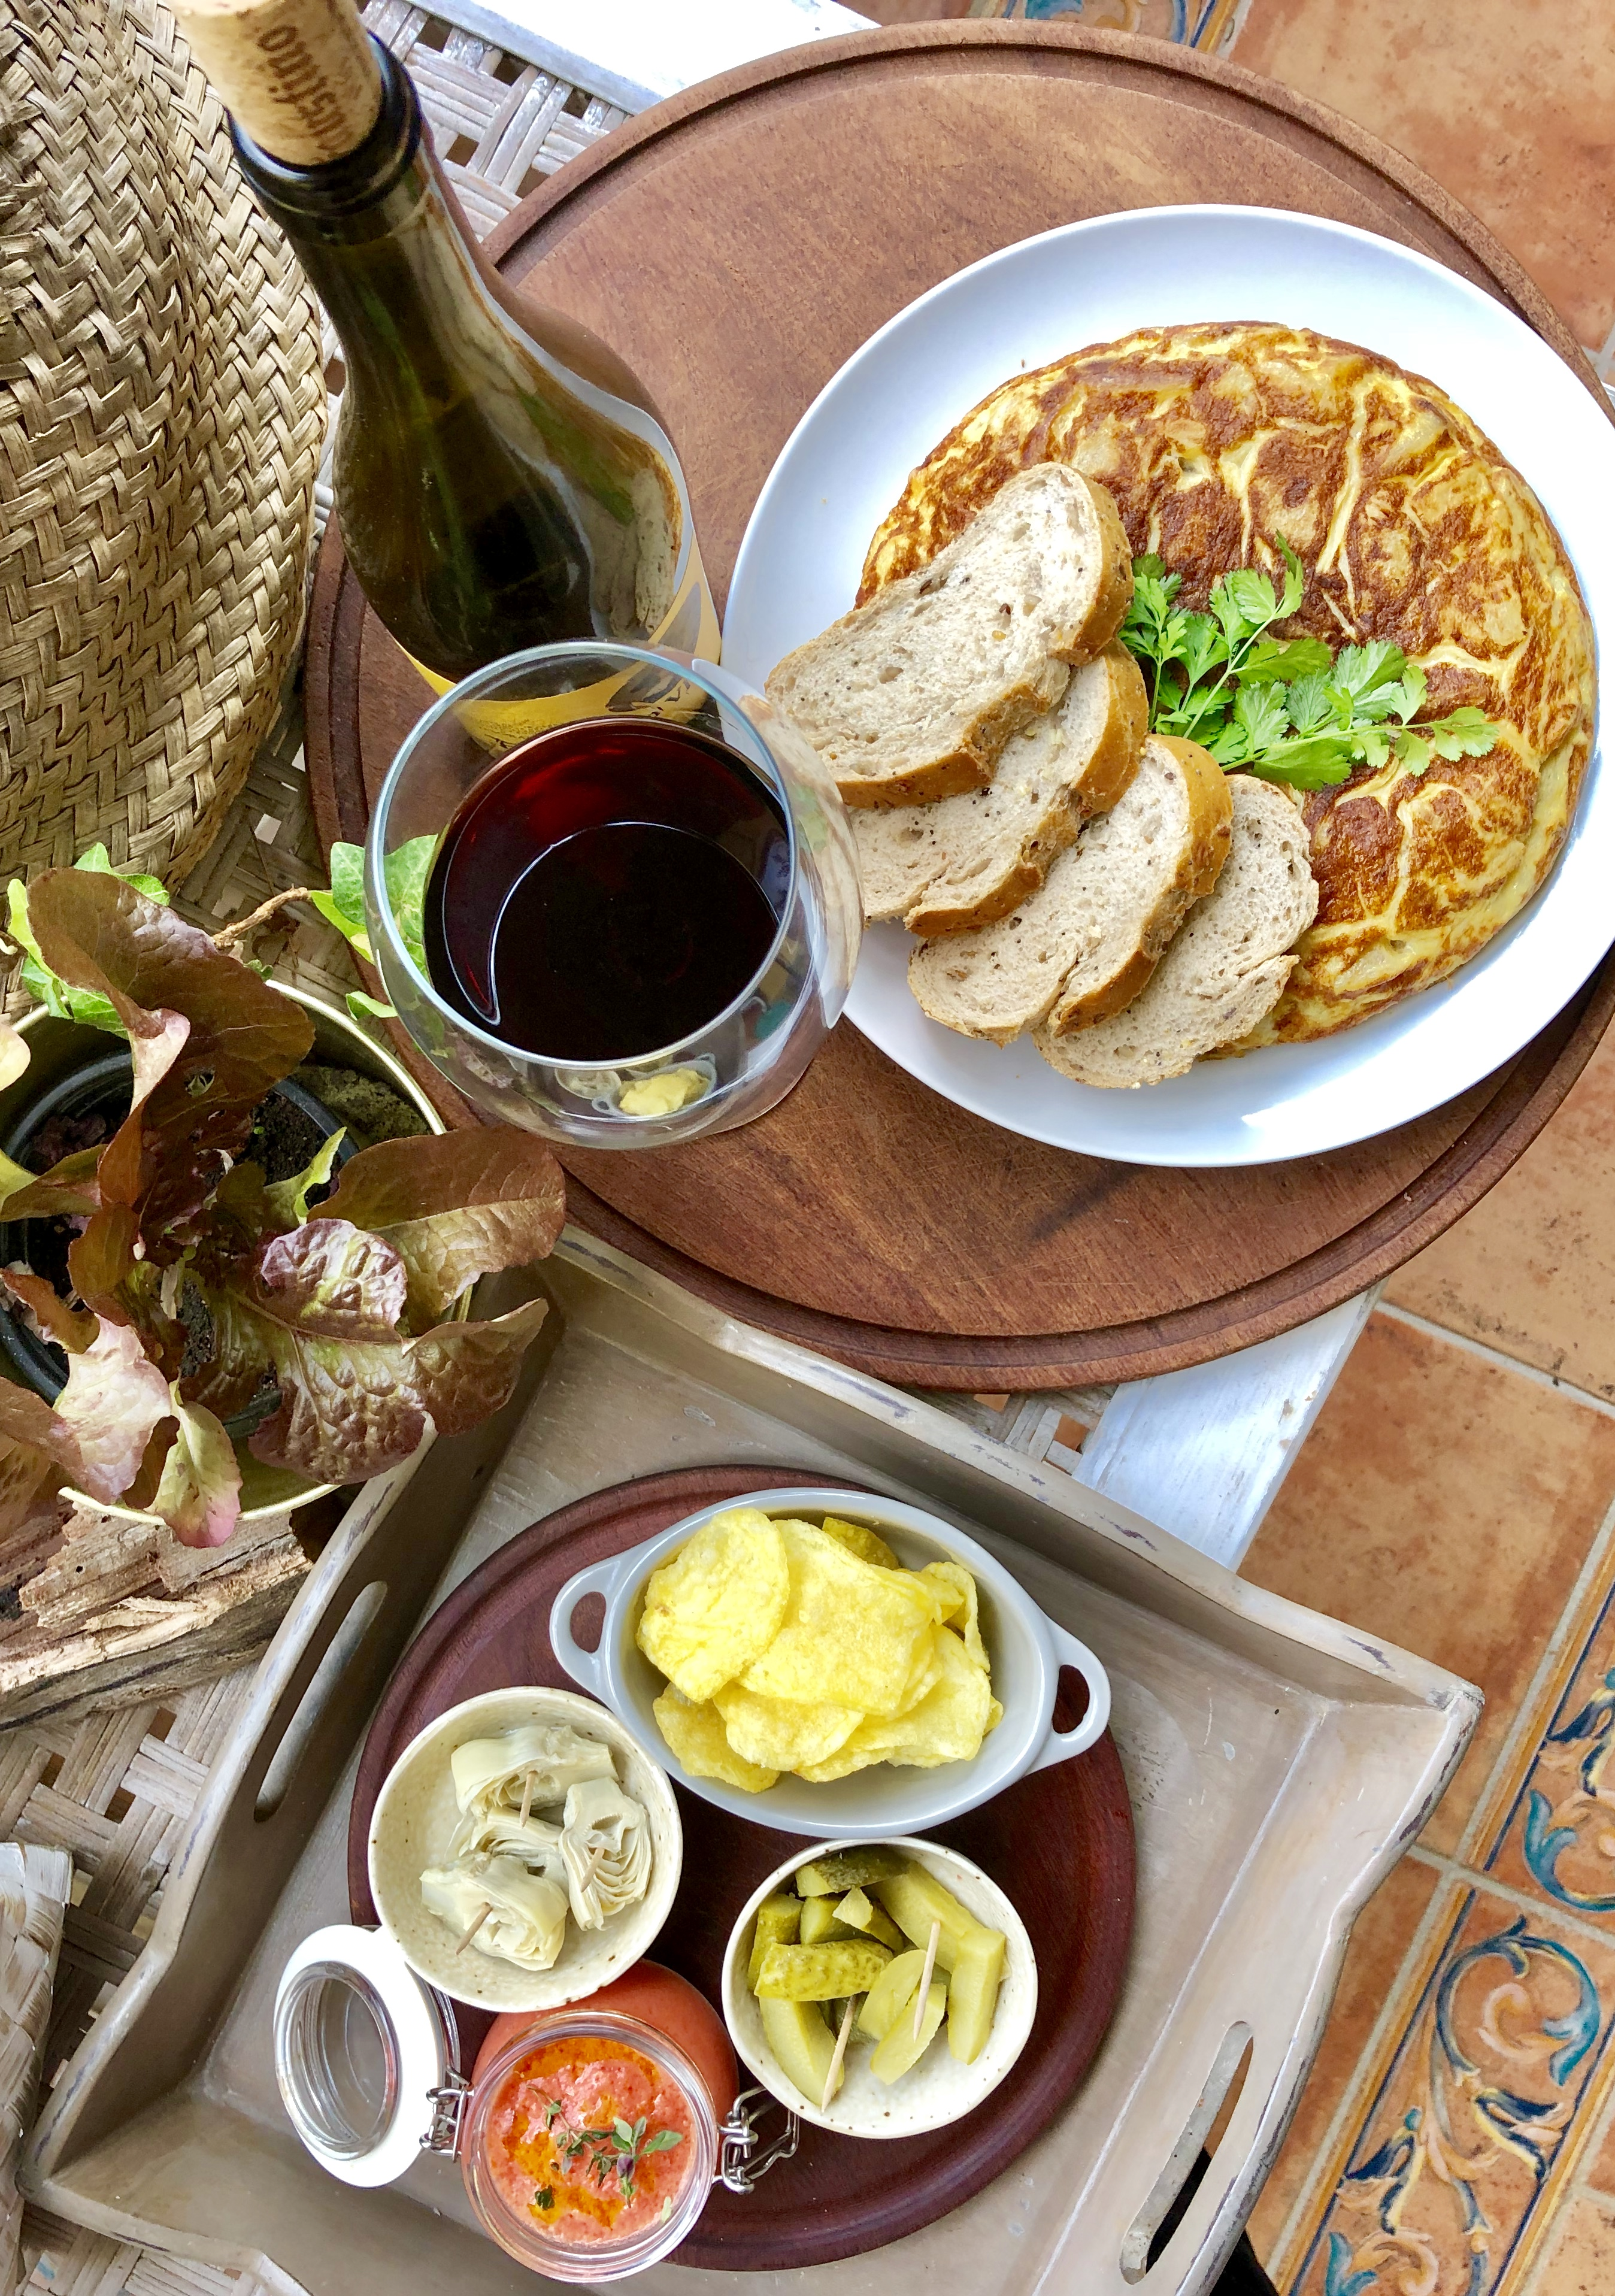 Spanish omelette with snacks